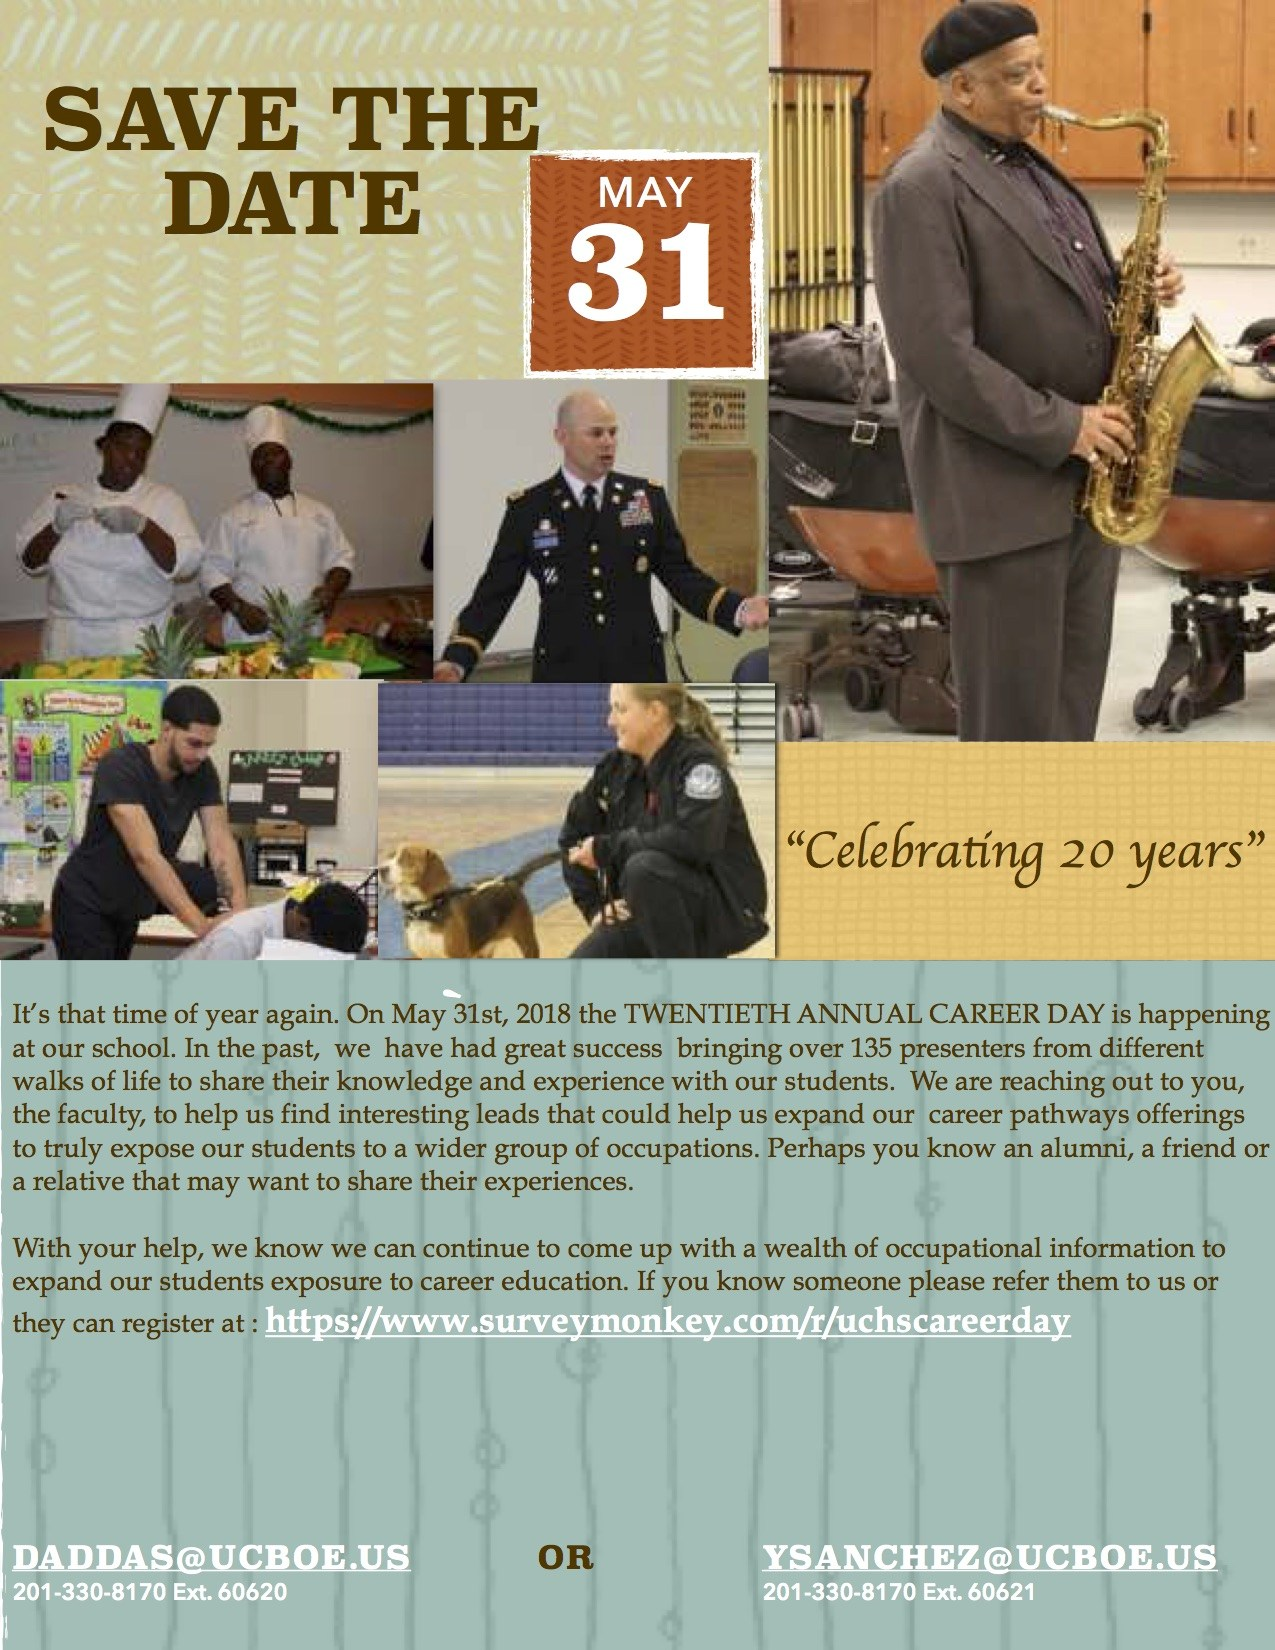 career day save the date